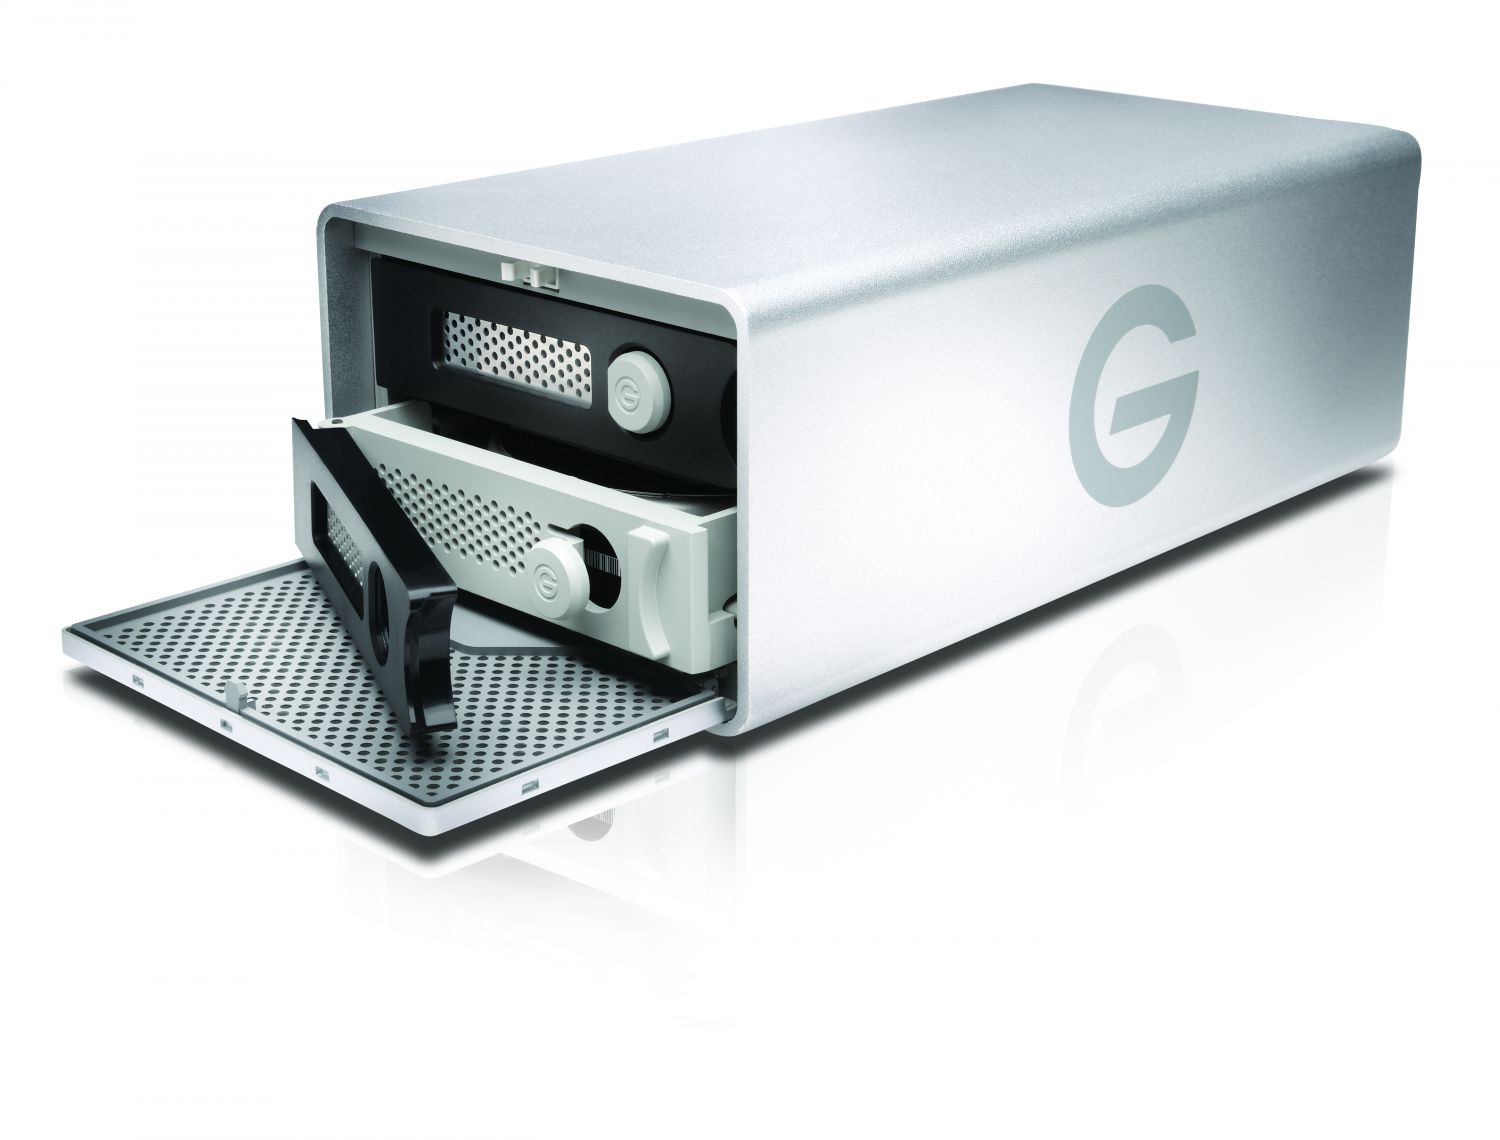 G-Technology Announces New G-Raid Solutions At BVE Expo